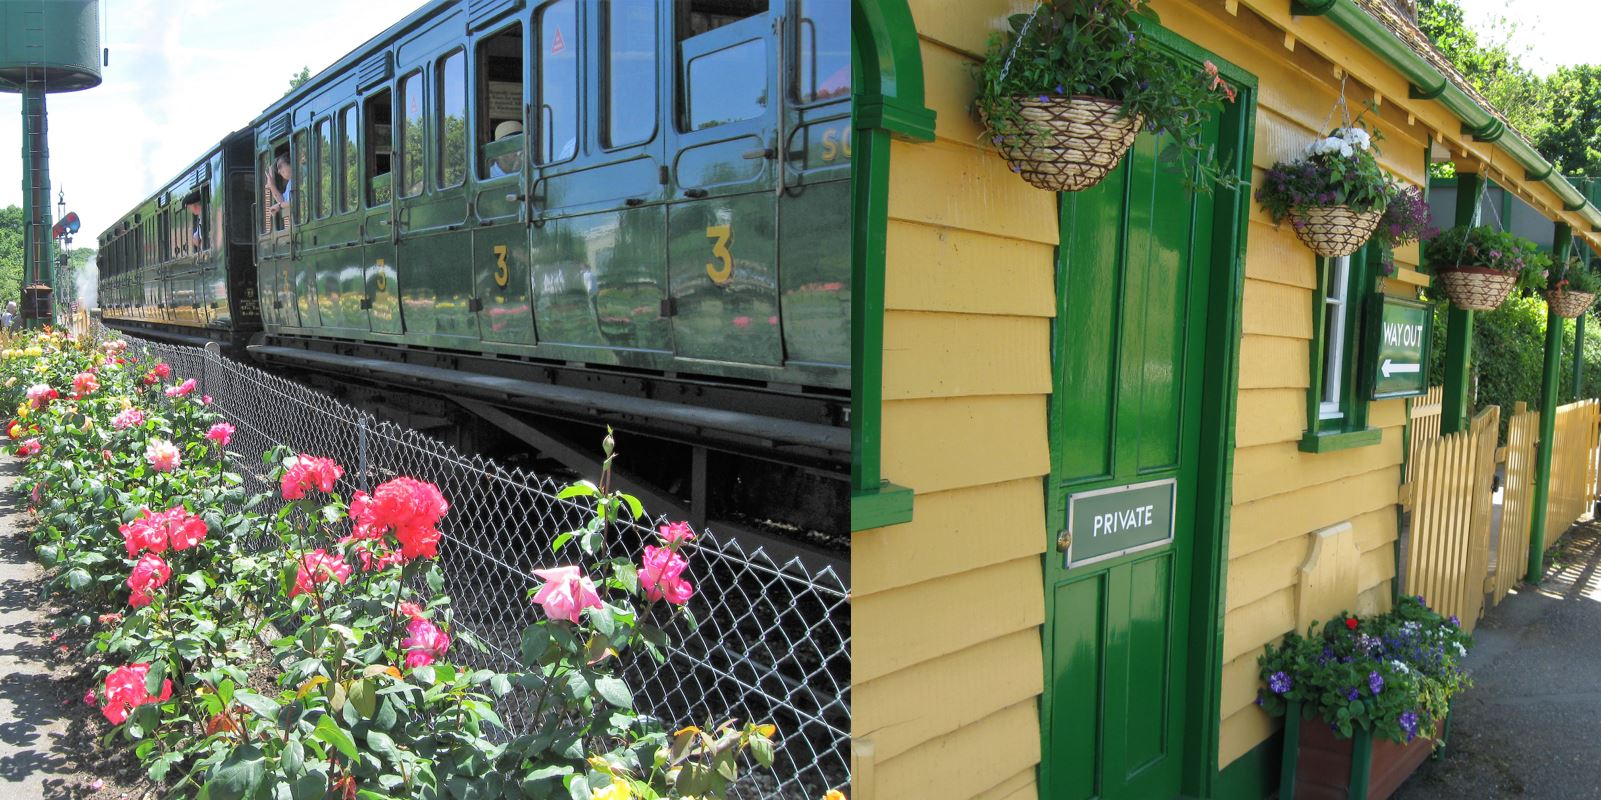 IW Steam Railway enters the Wight in Bloom Competition